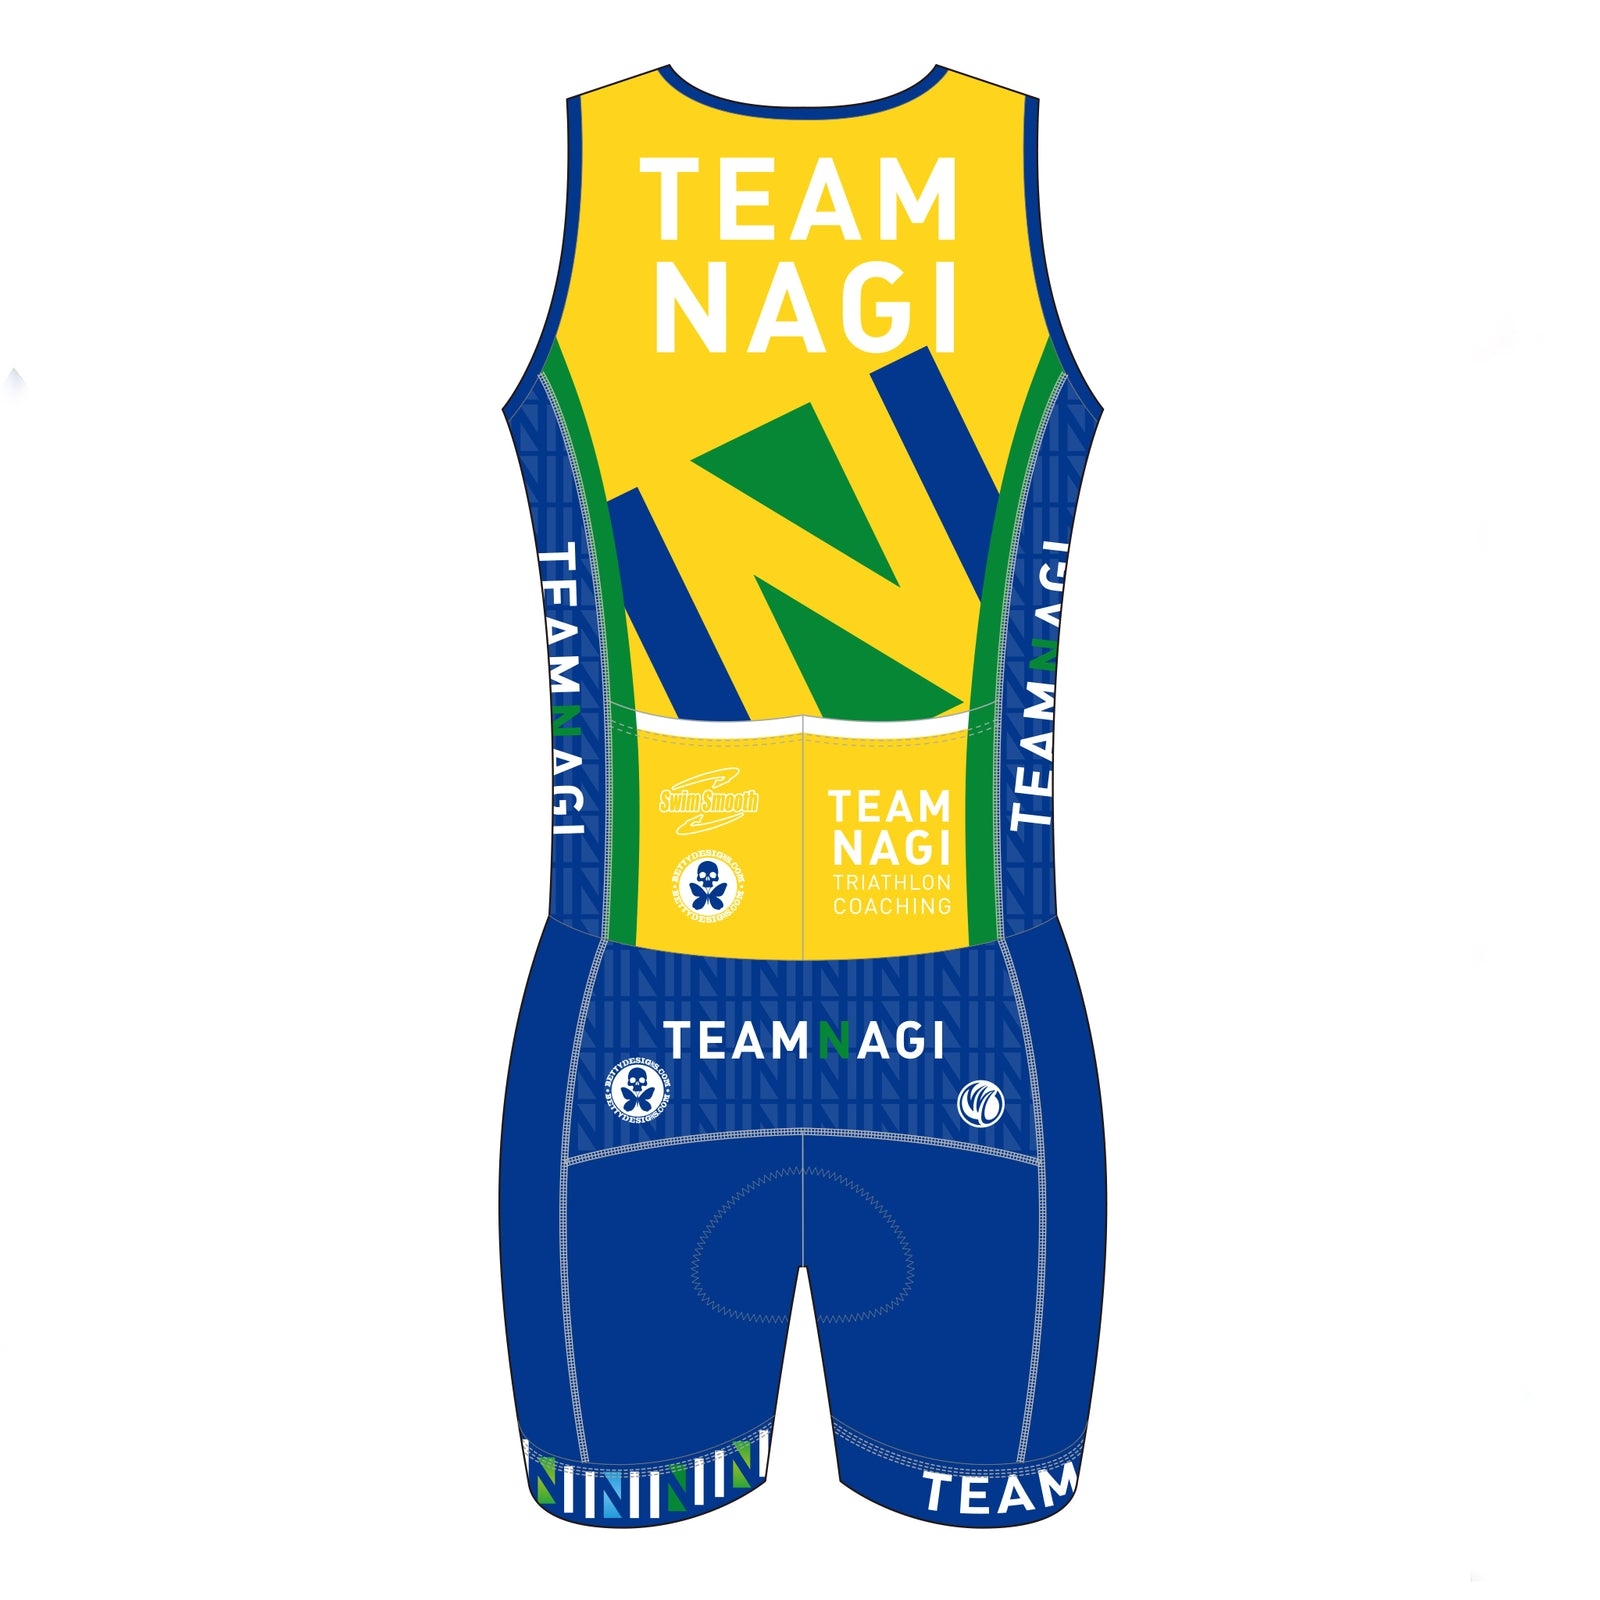 Team Nagi BLUE DESIGN BRONZE Tri Suit